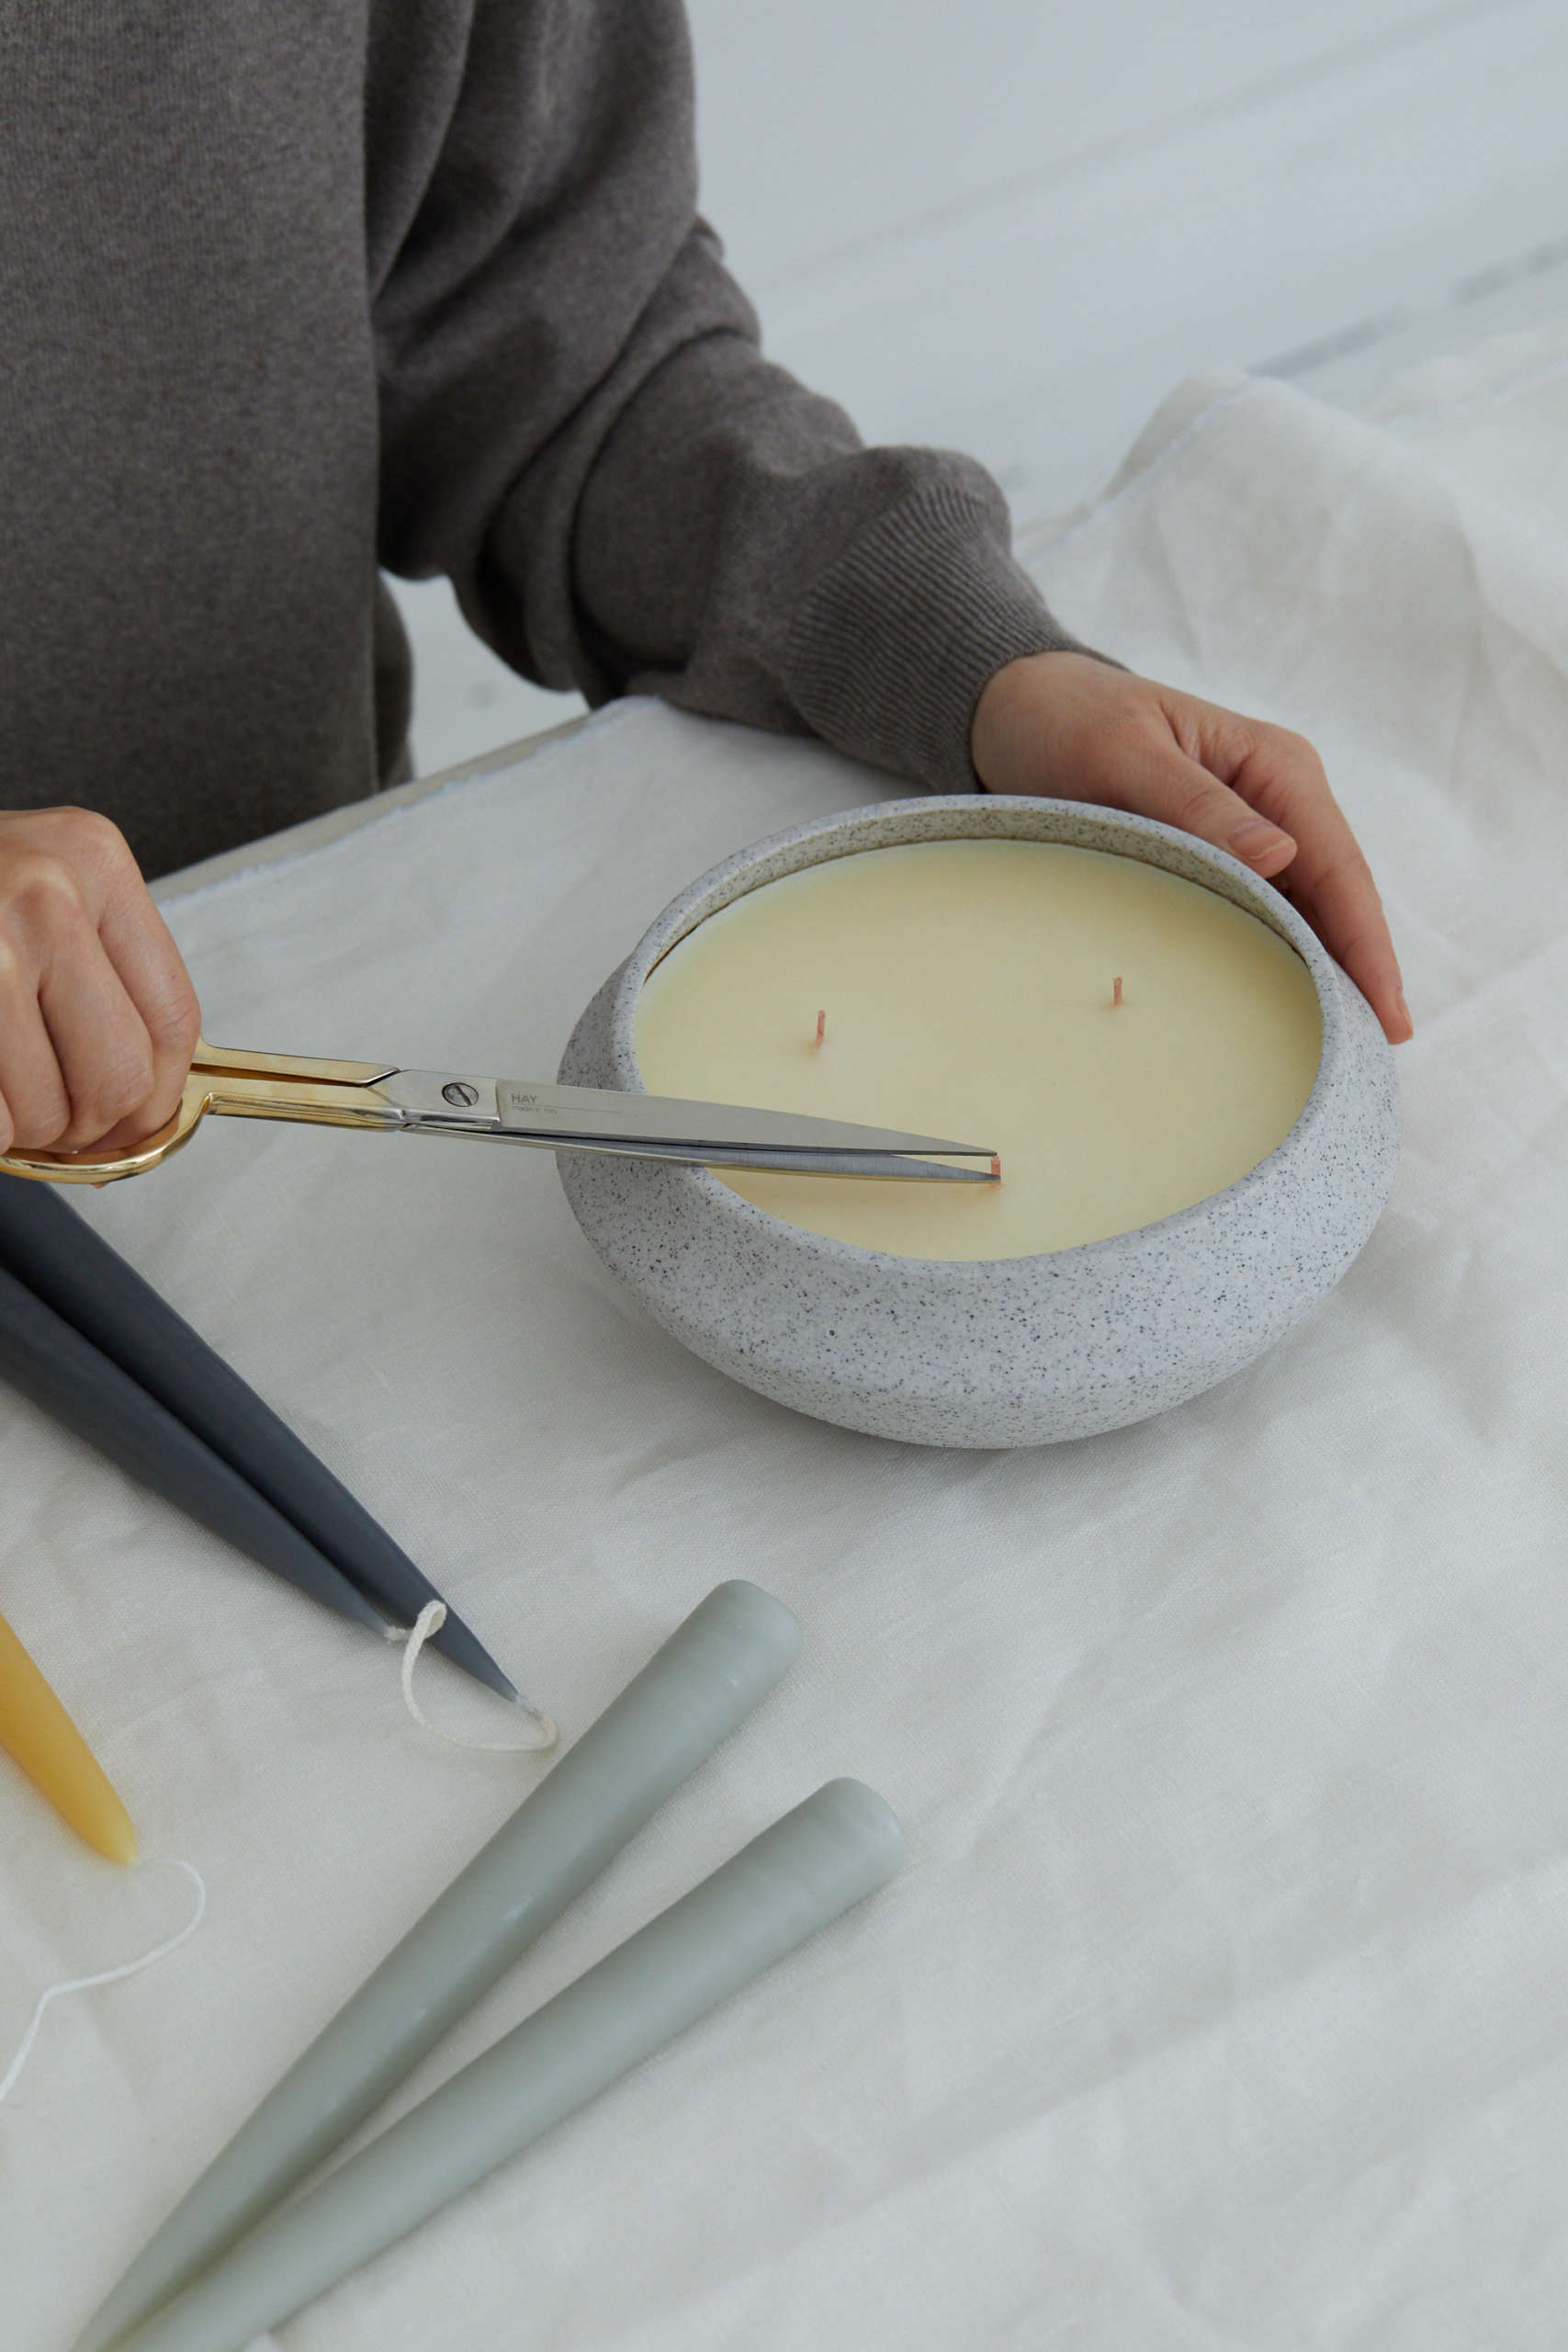 How to Care for Candles: Tips from a Brooklyn Shop - Remodelista